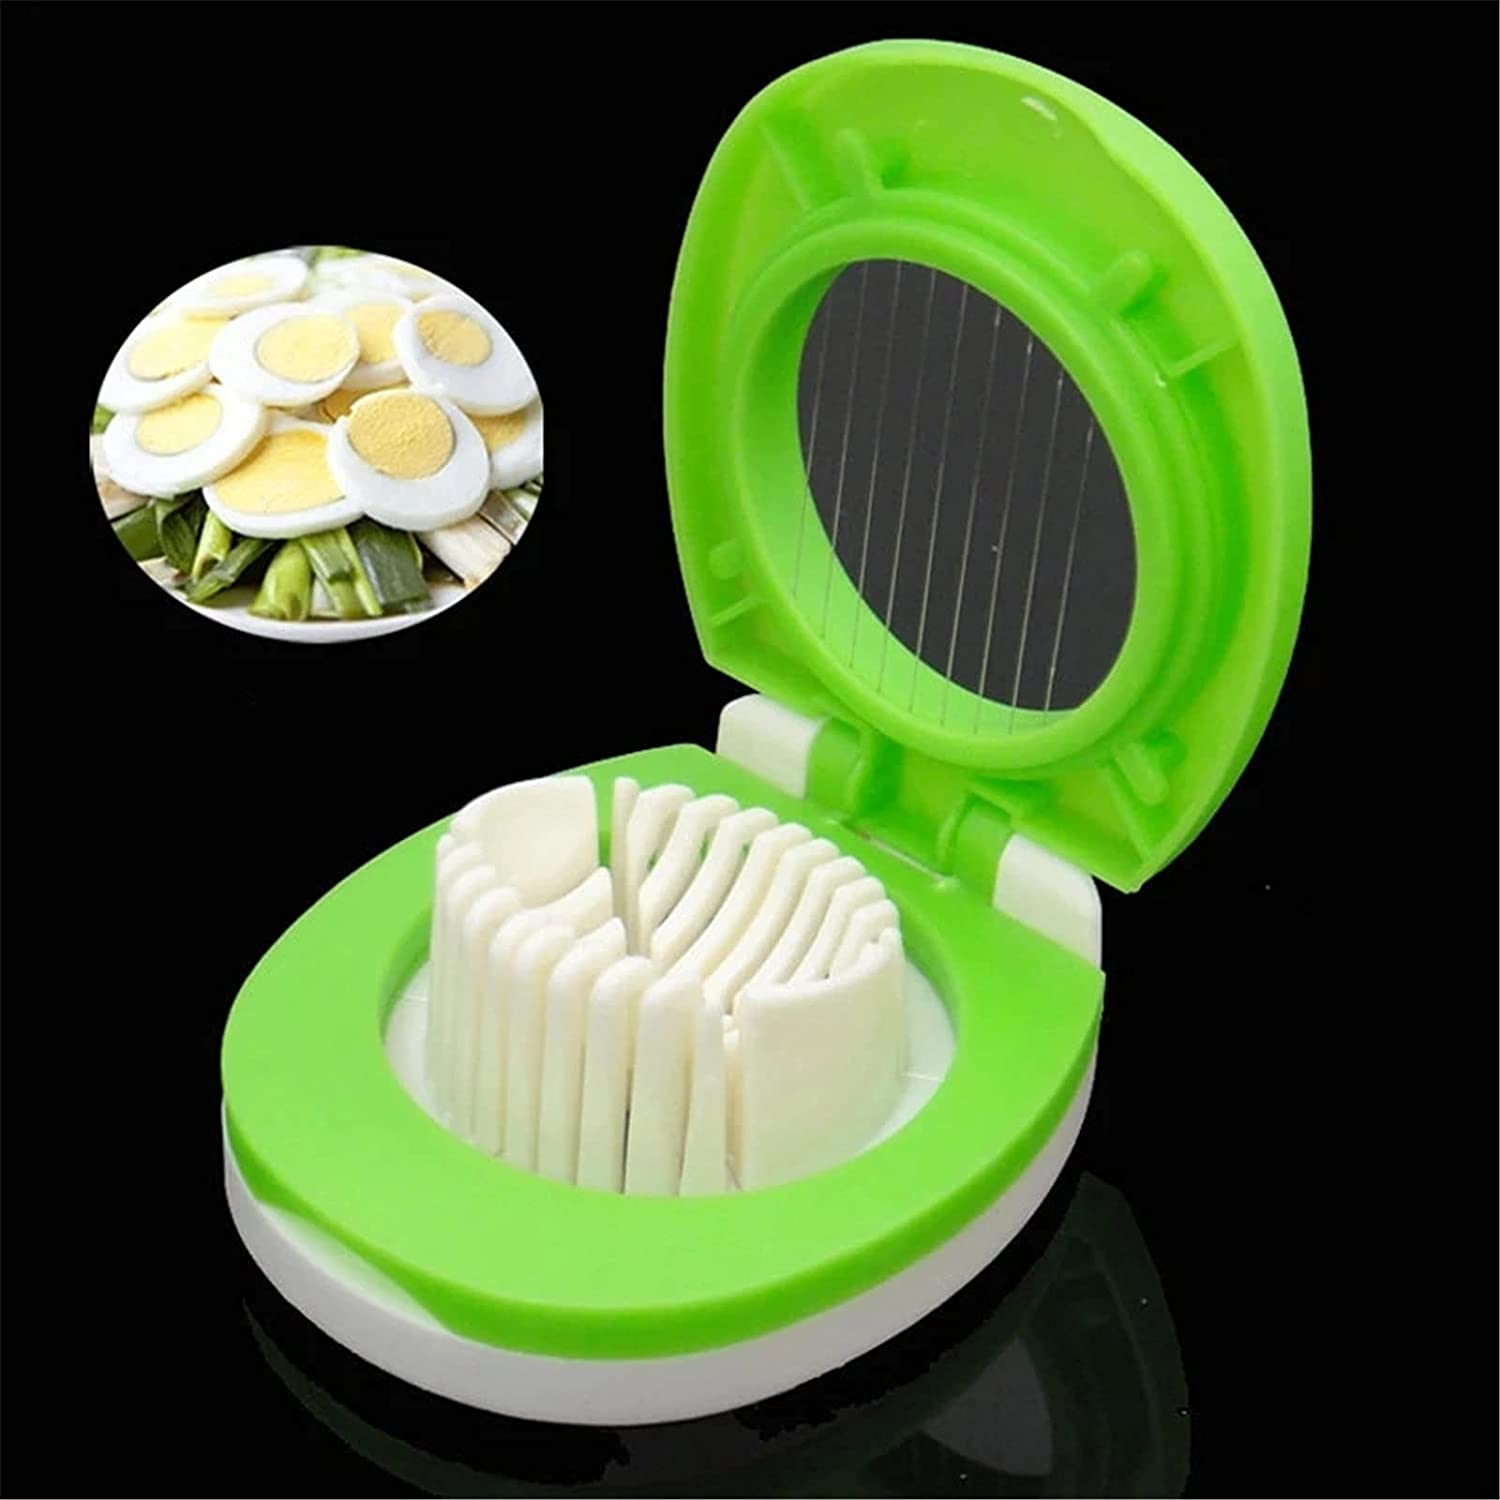 QERNTPEY Egg Slicer Max 54% OFF Multifunction Slicers Raleigh Mall Div Cutter Section